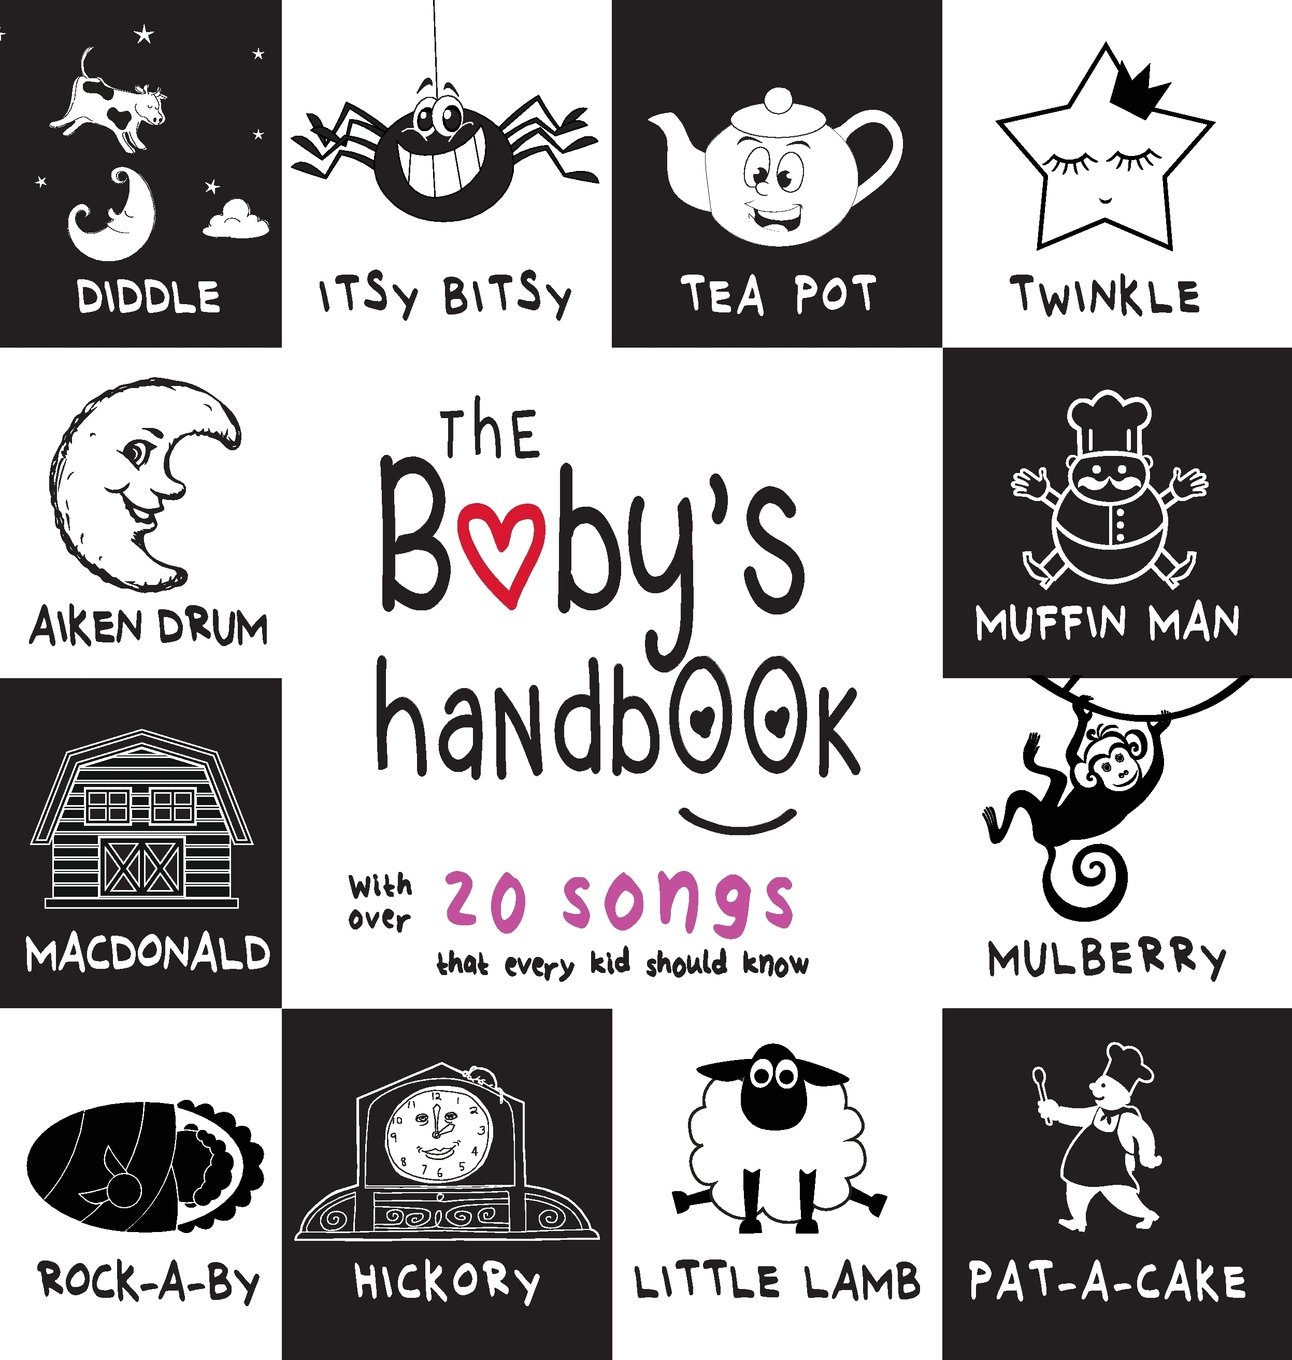 The Baby's Handbook: 21 Black and White Nursery Rhyme Songs, Itsy Bitsy Spider, Old MacDonald, Pat-a-cake, Twinkle Twinkle, Rock-a-by baby, and More (Engage Early Readers: Children's Learning Books)